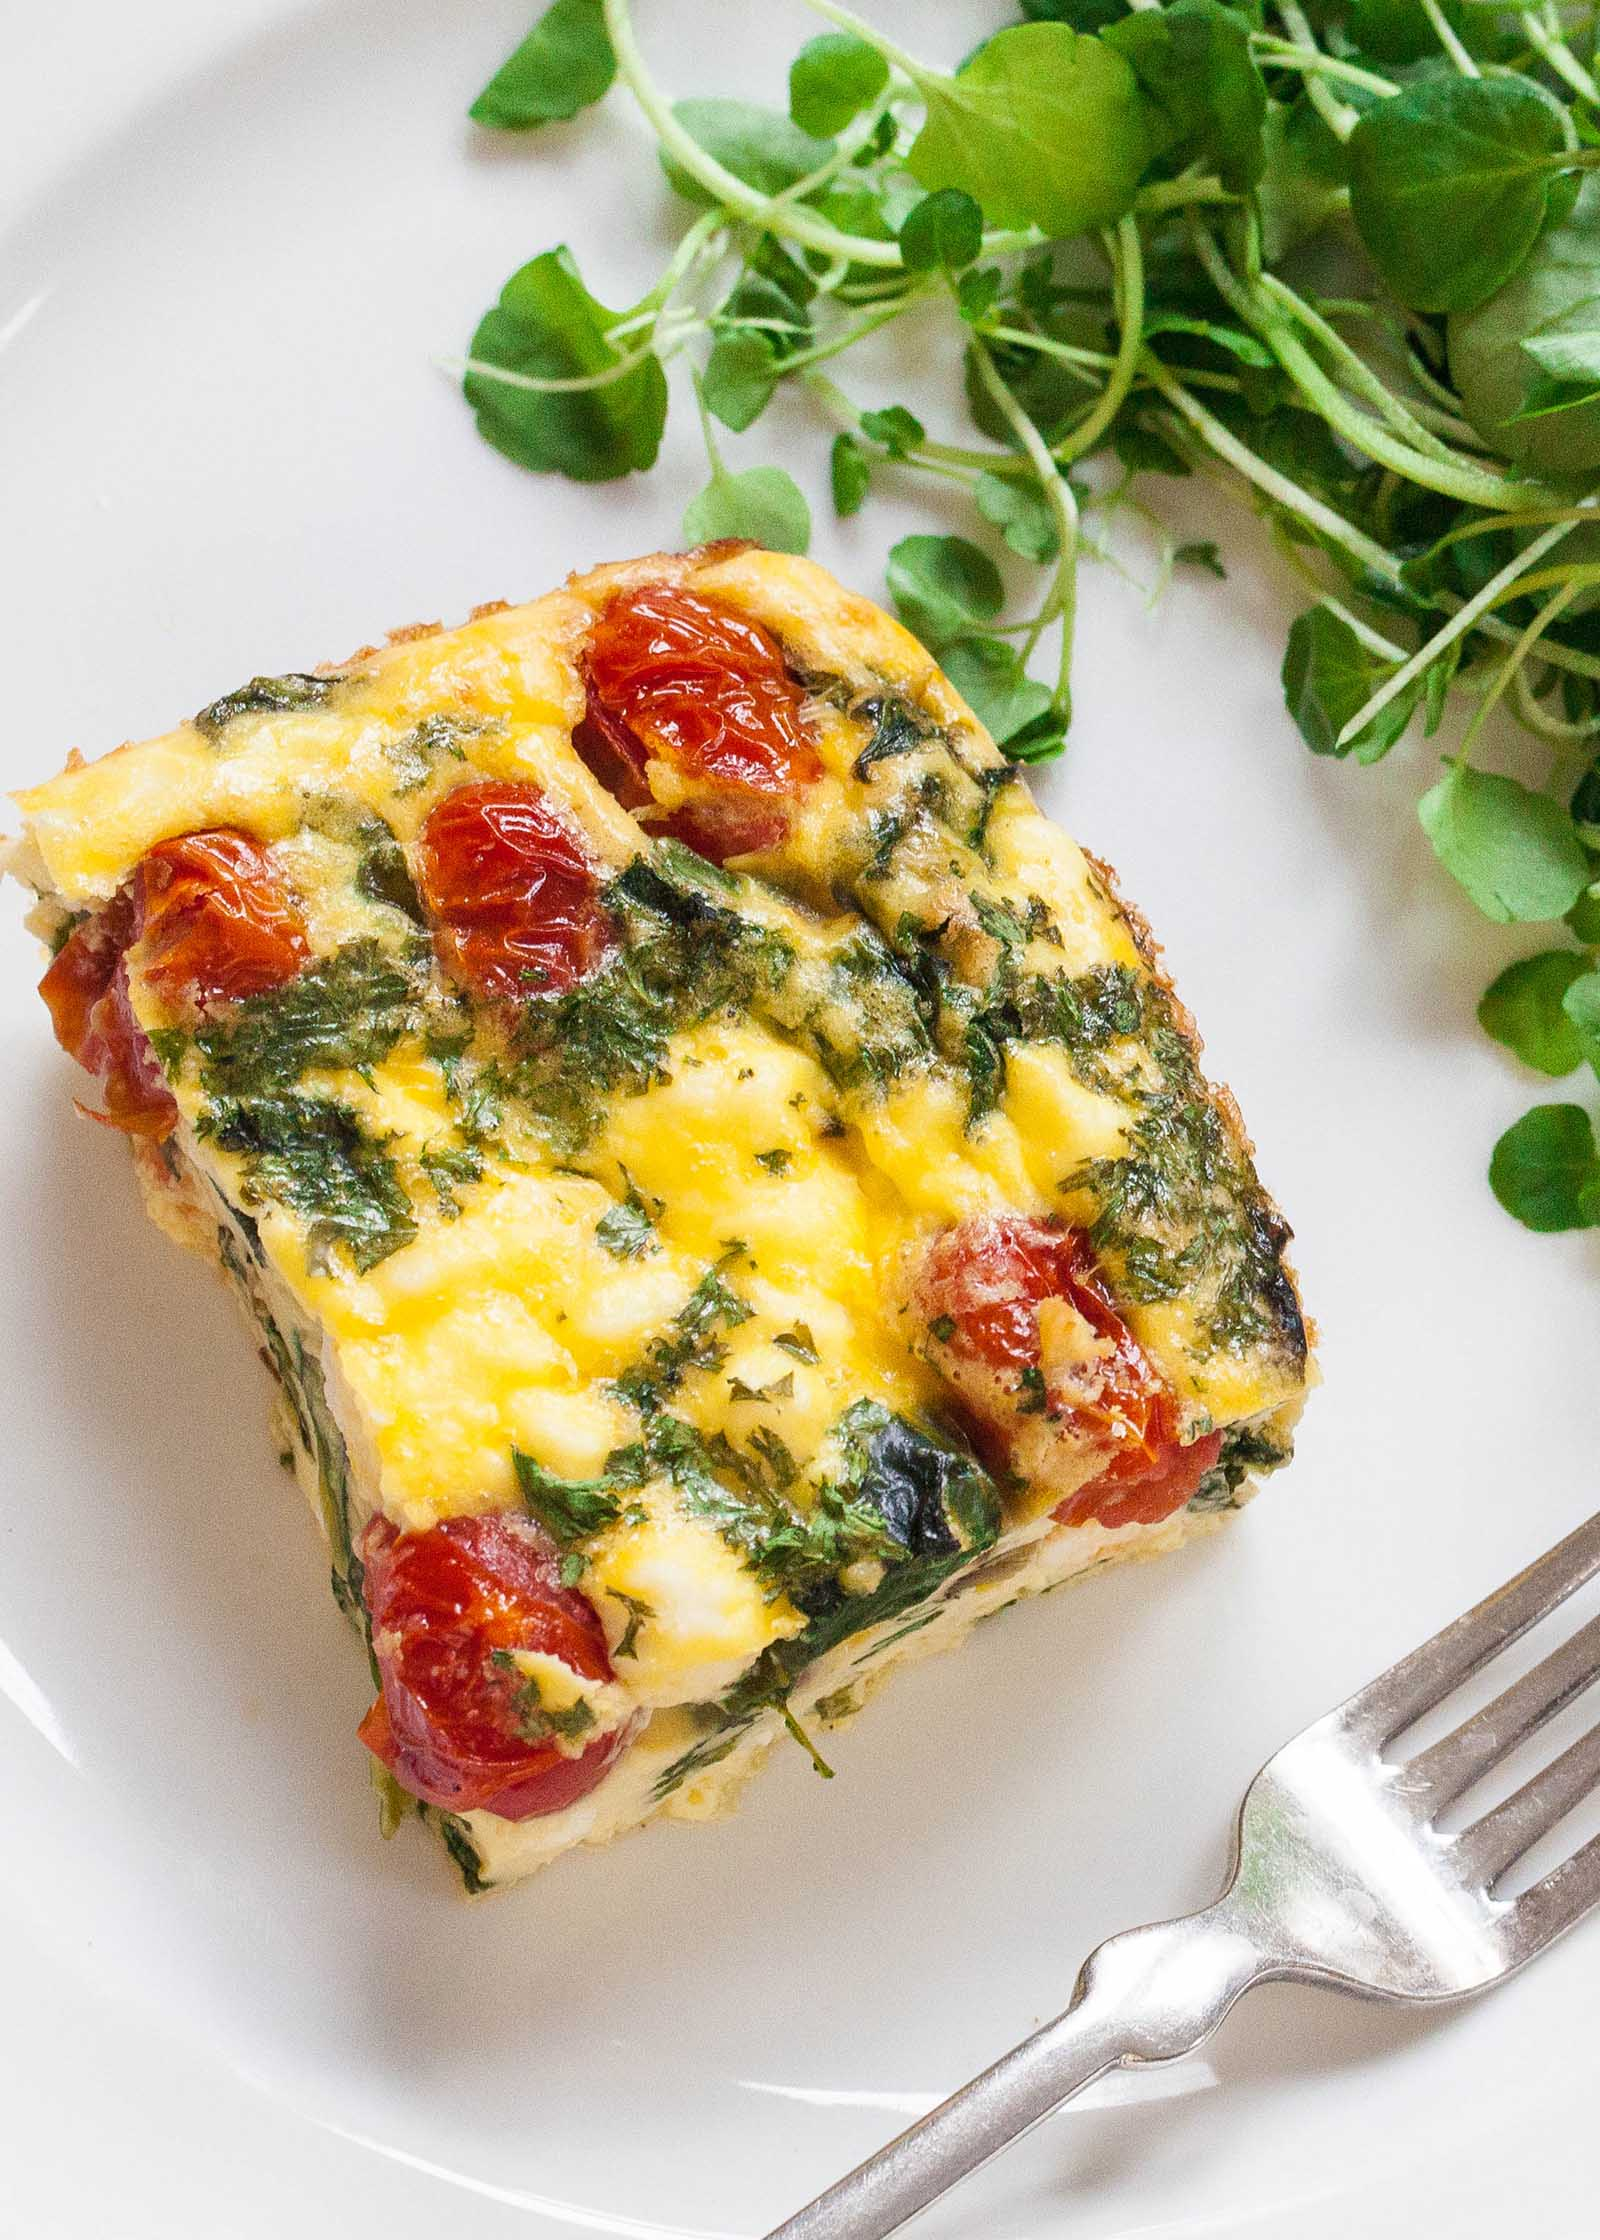 Frittata square on a plate